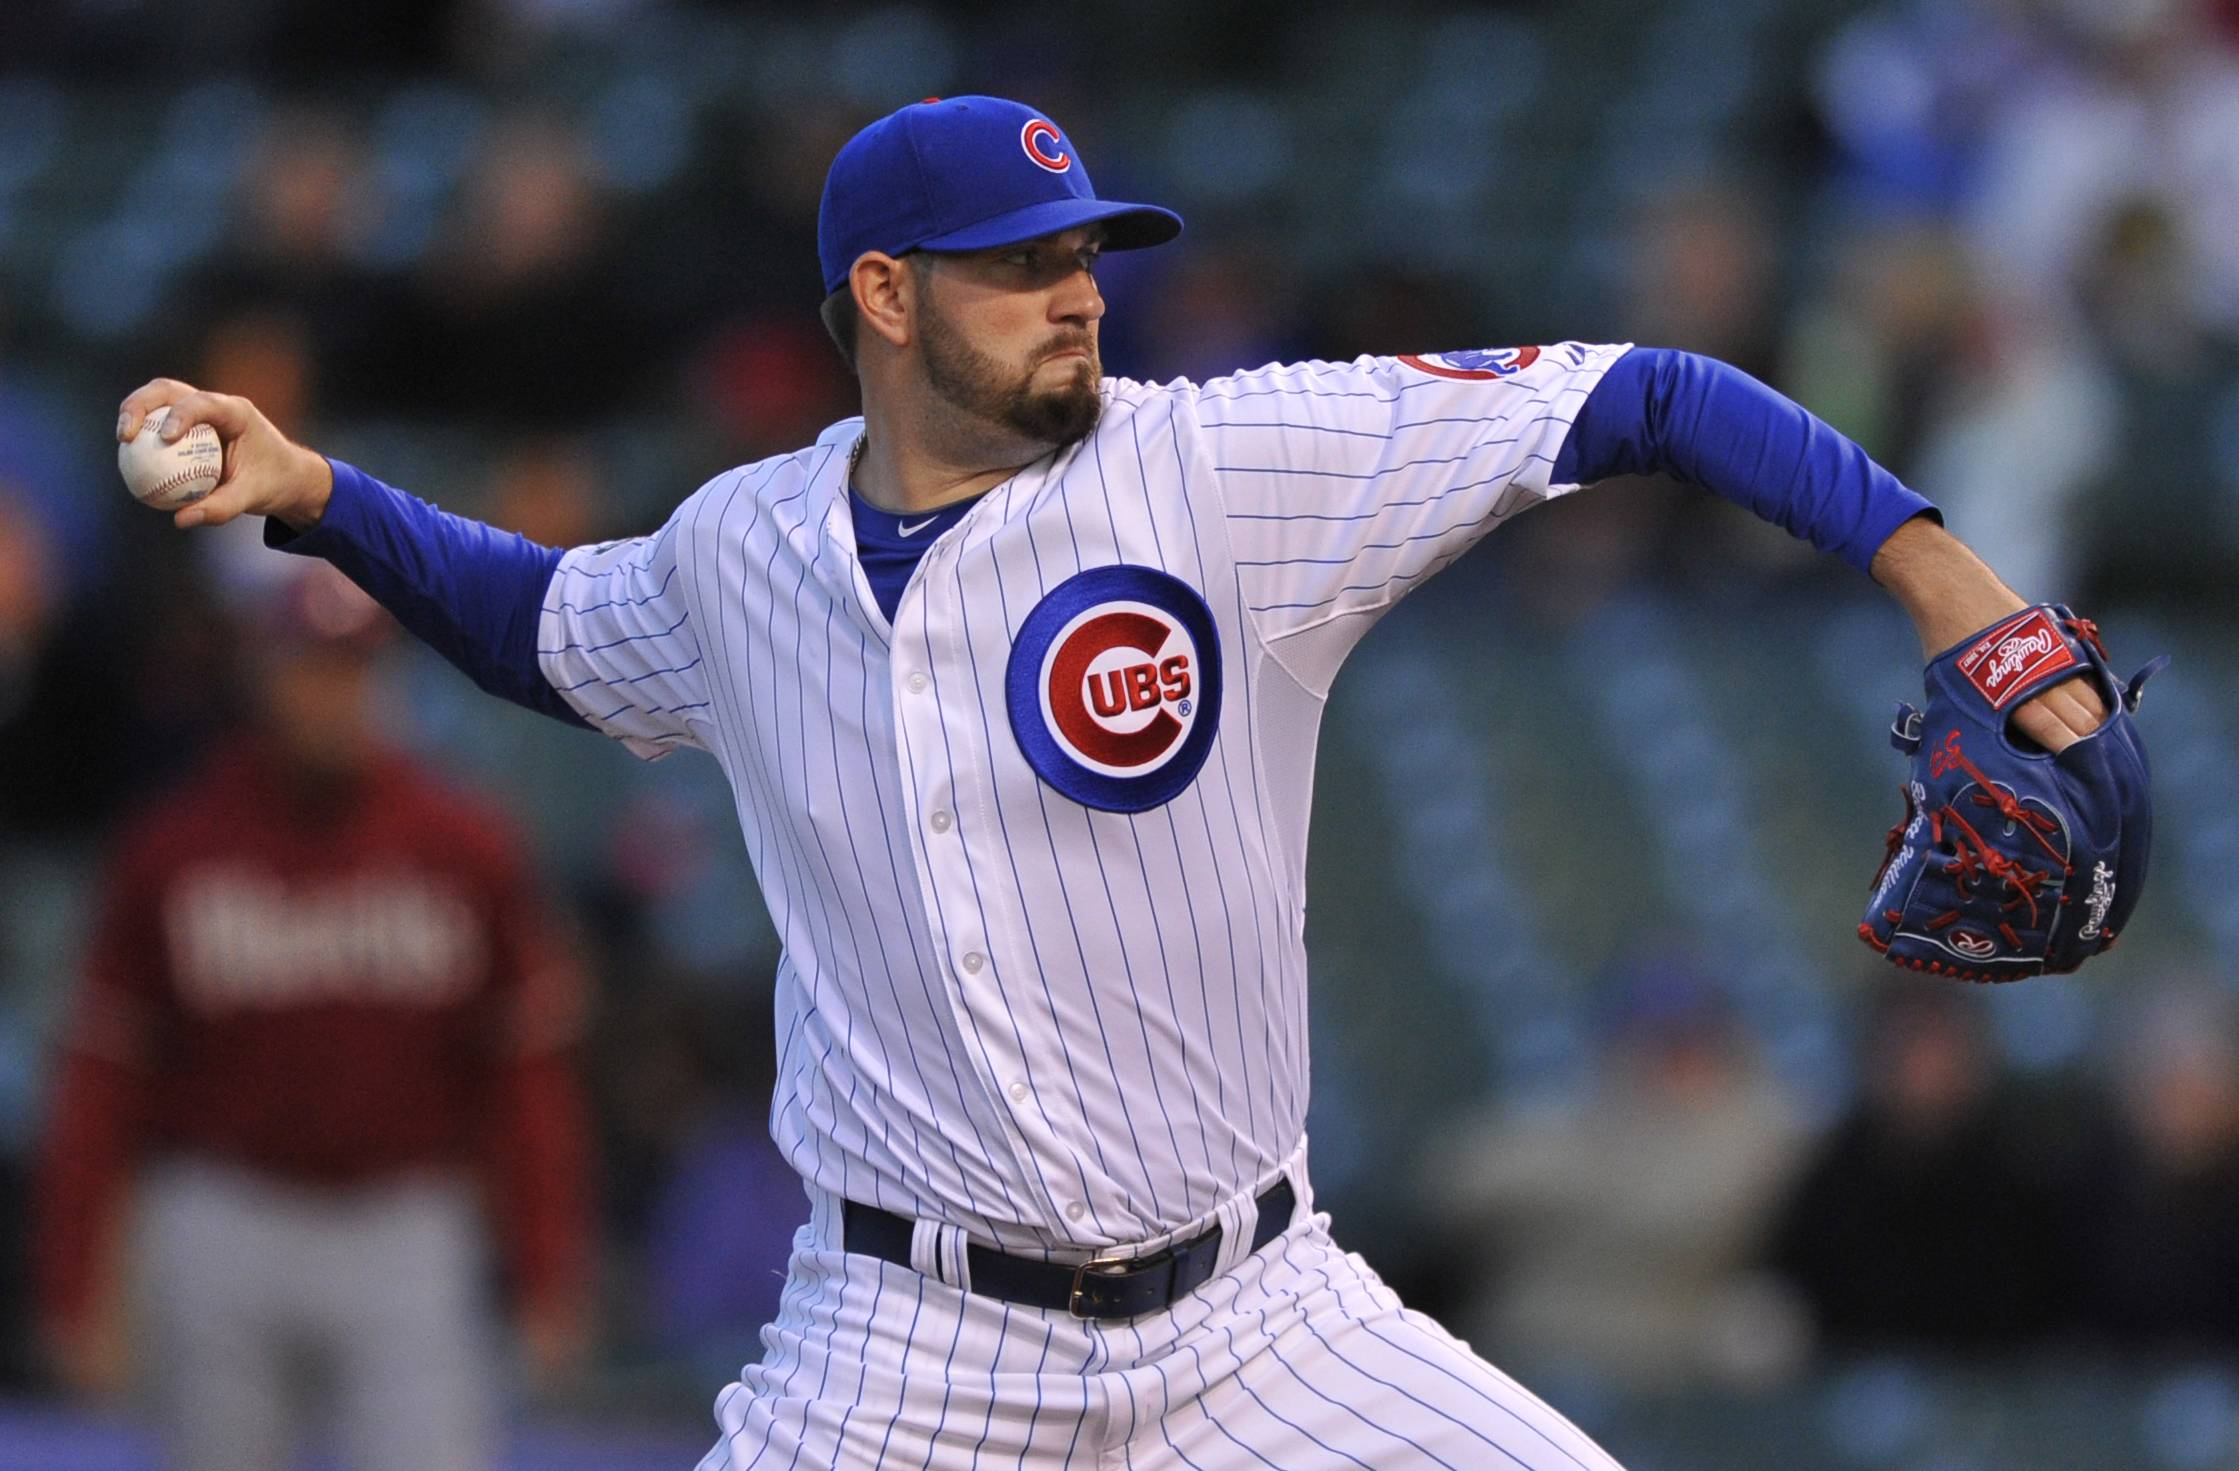 Cubs starter and winning pitcher Jason Hammel worked 7 innings and allowed 1 run on 4 hits againsts the Diamondbacks on Tuesday at Wrigley Field.